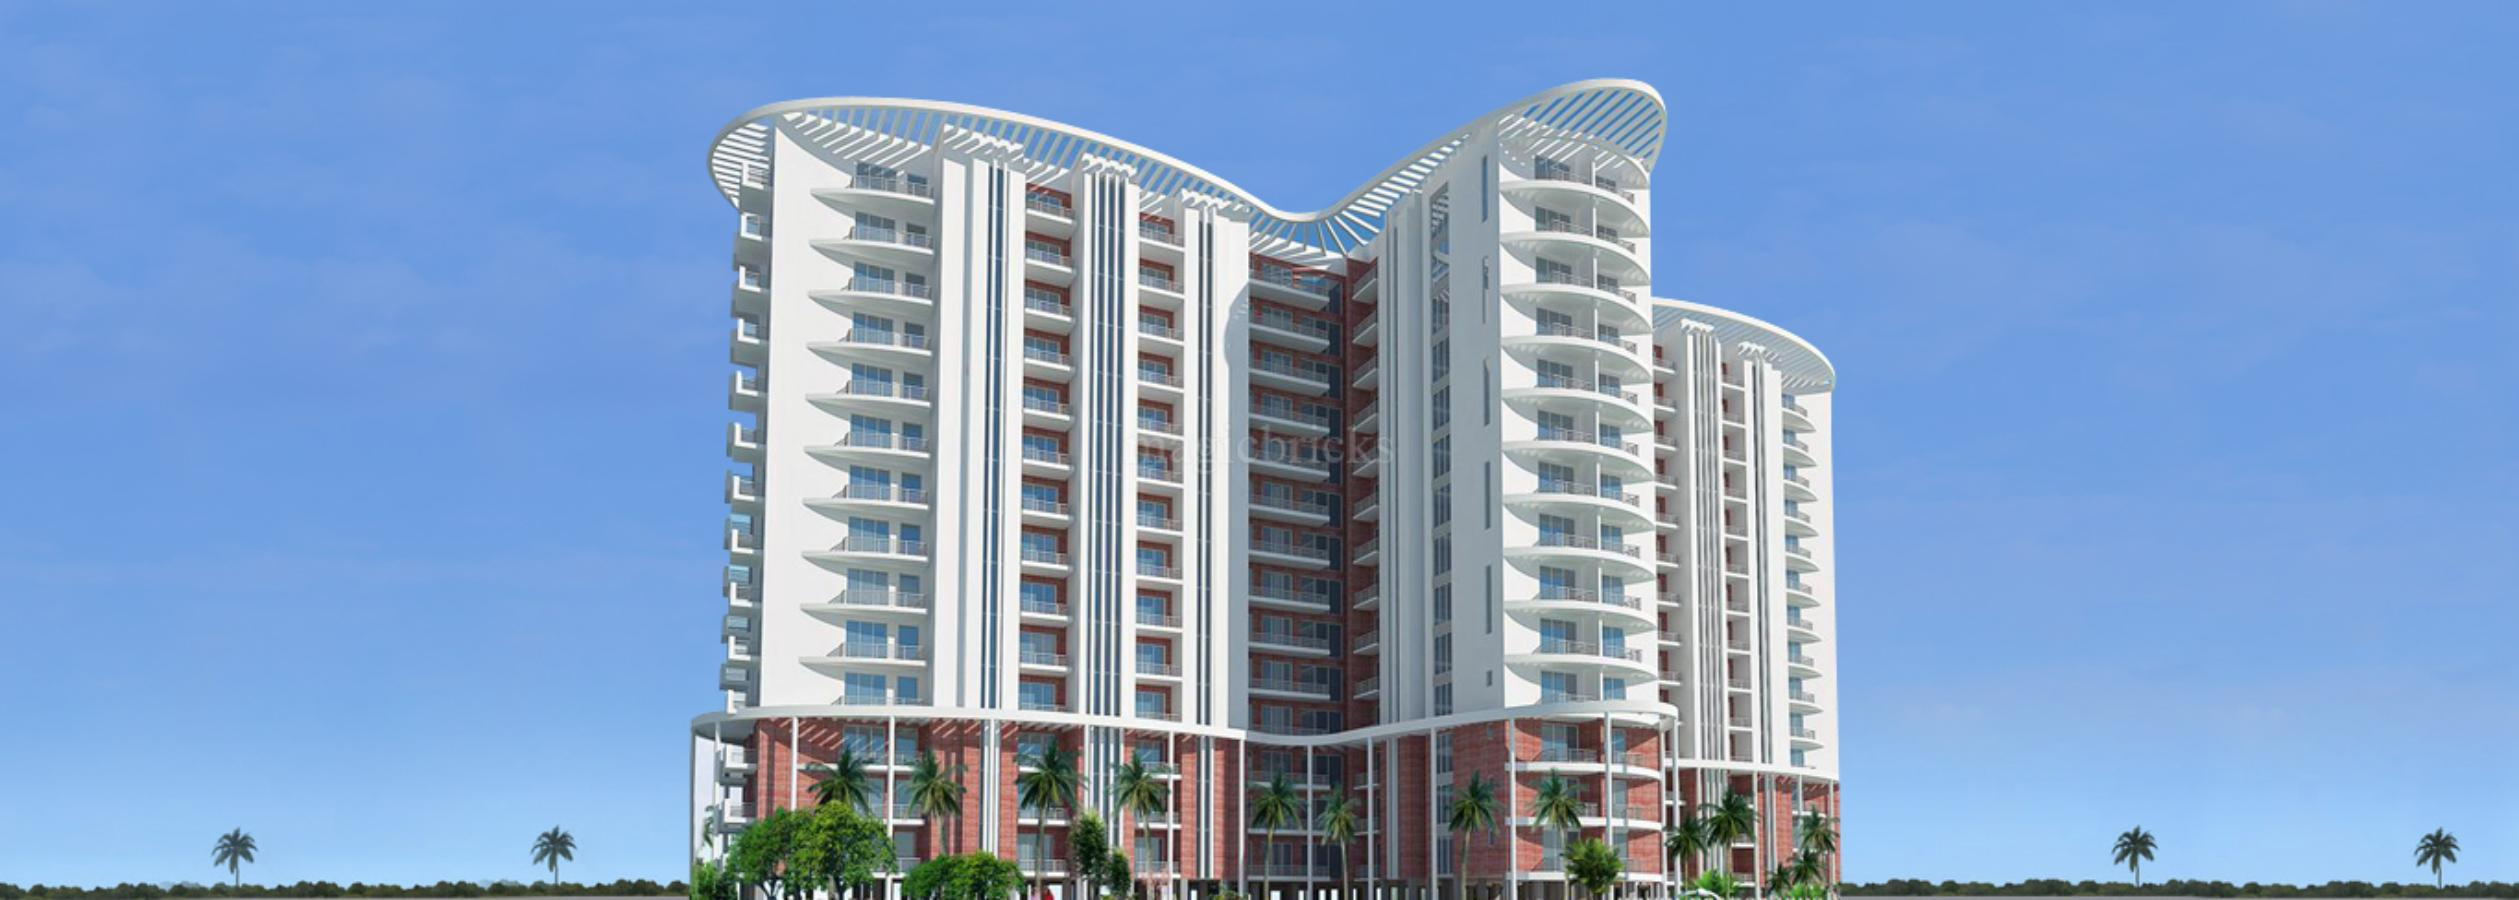 1 BHK Flats for Sale in Lucknow 2 BHK Flats For Sale Lucknow